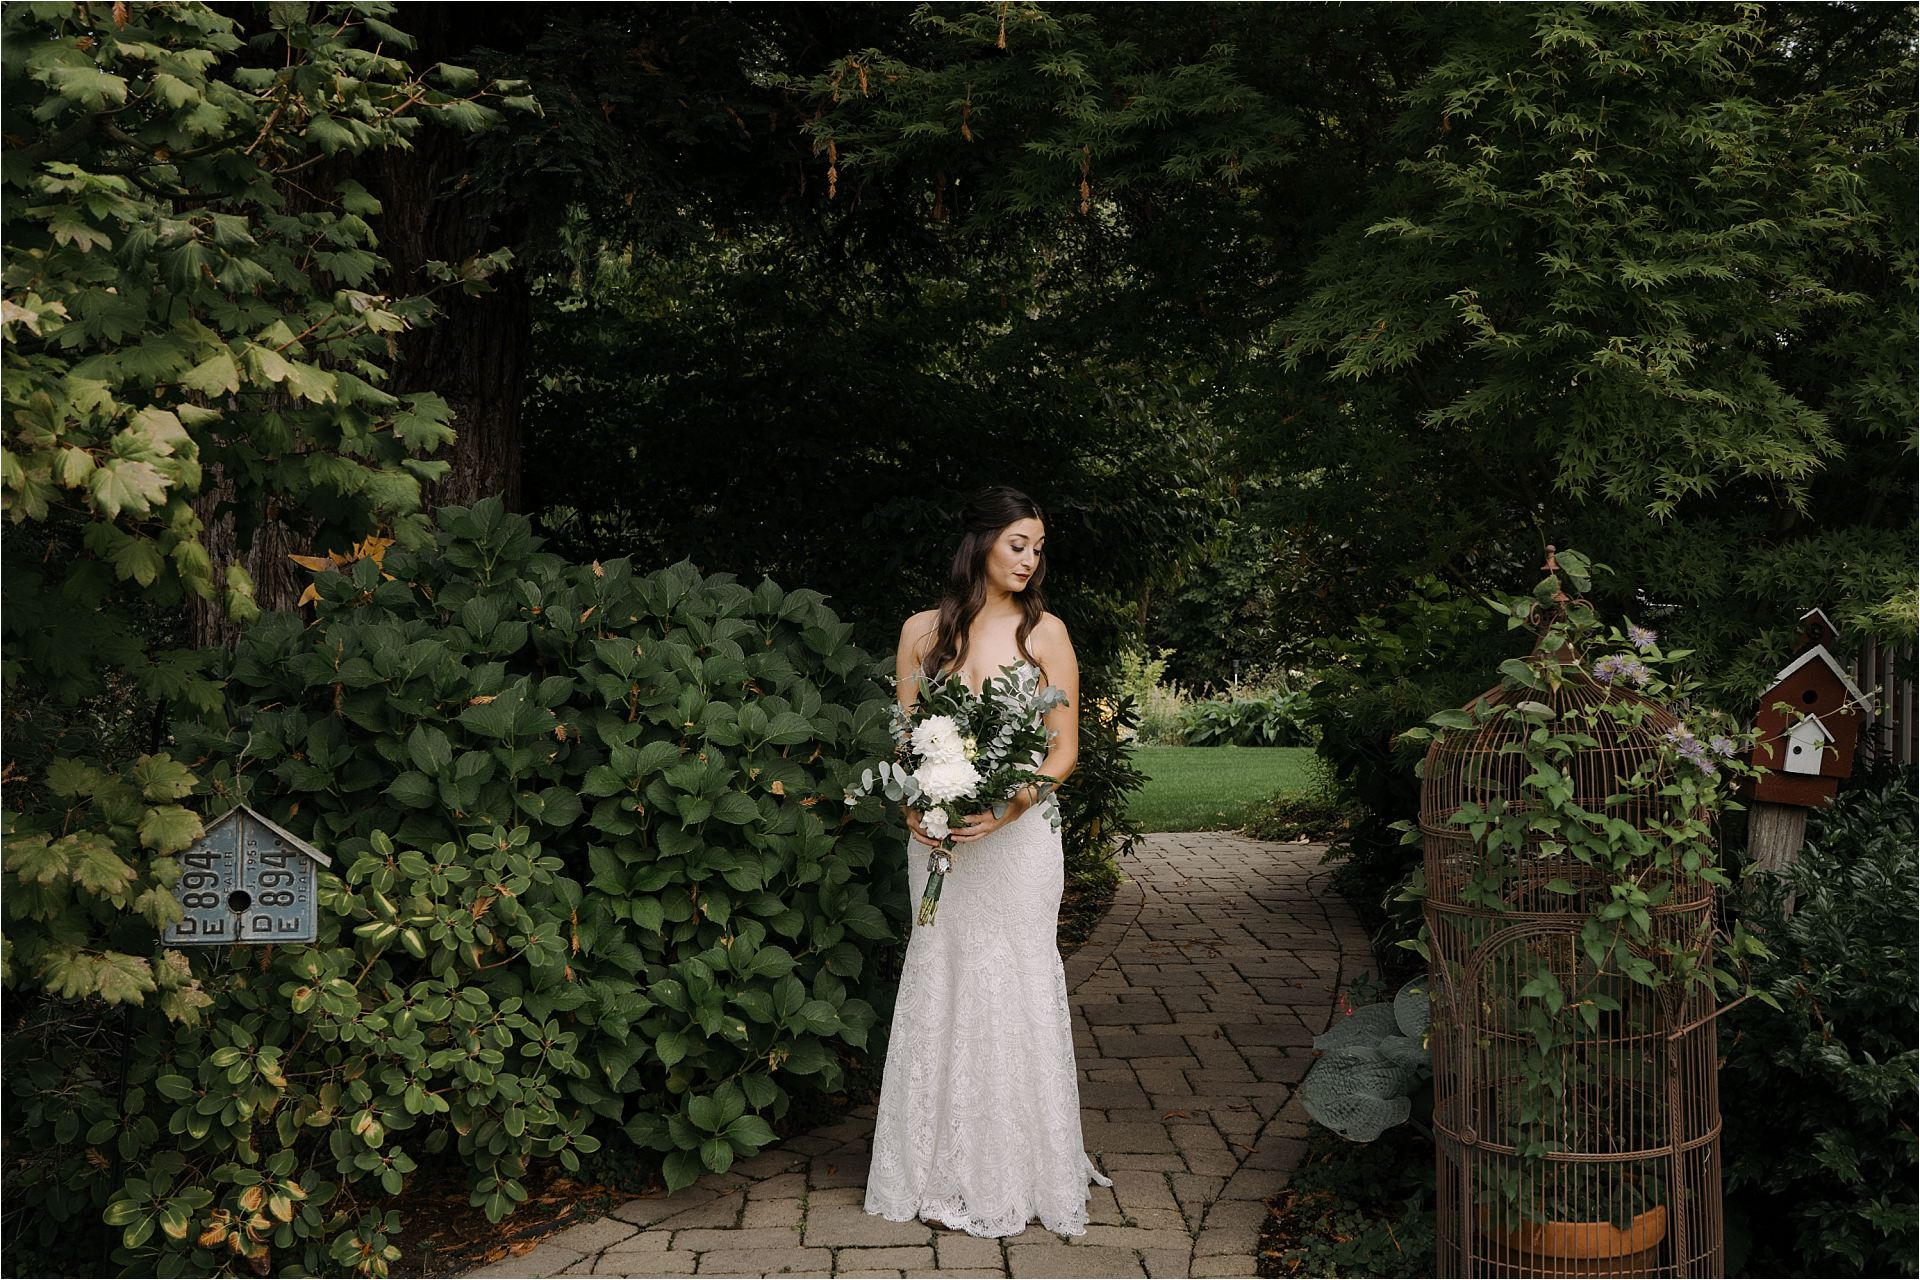 Bridal Portait before ceremony at Lucy's Garden in Ridgefield Washington